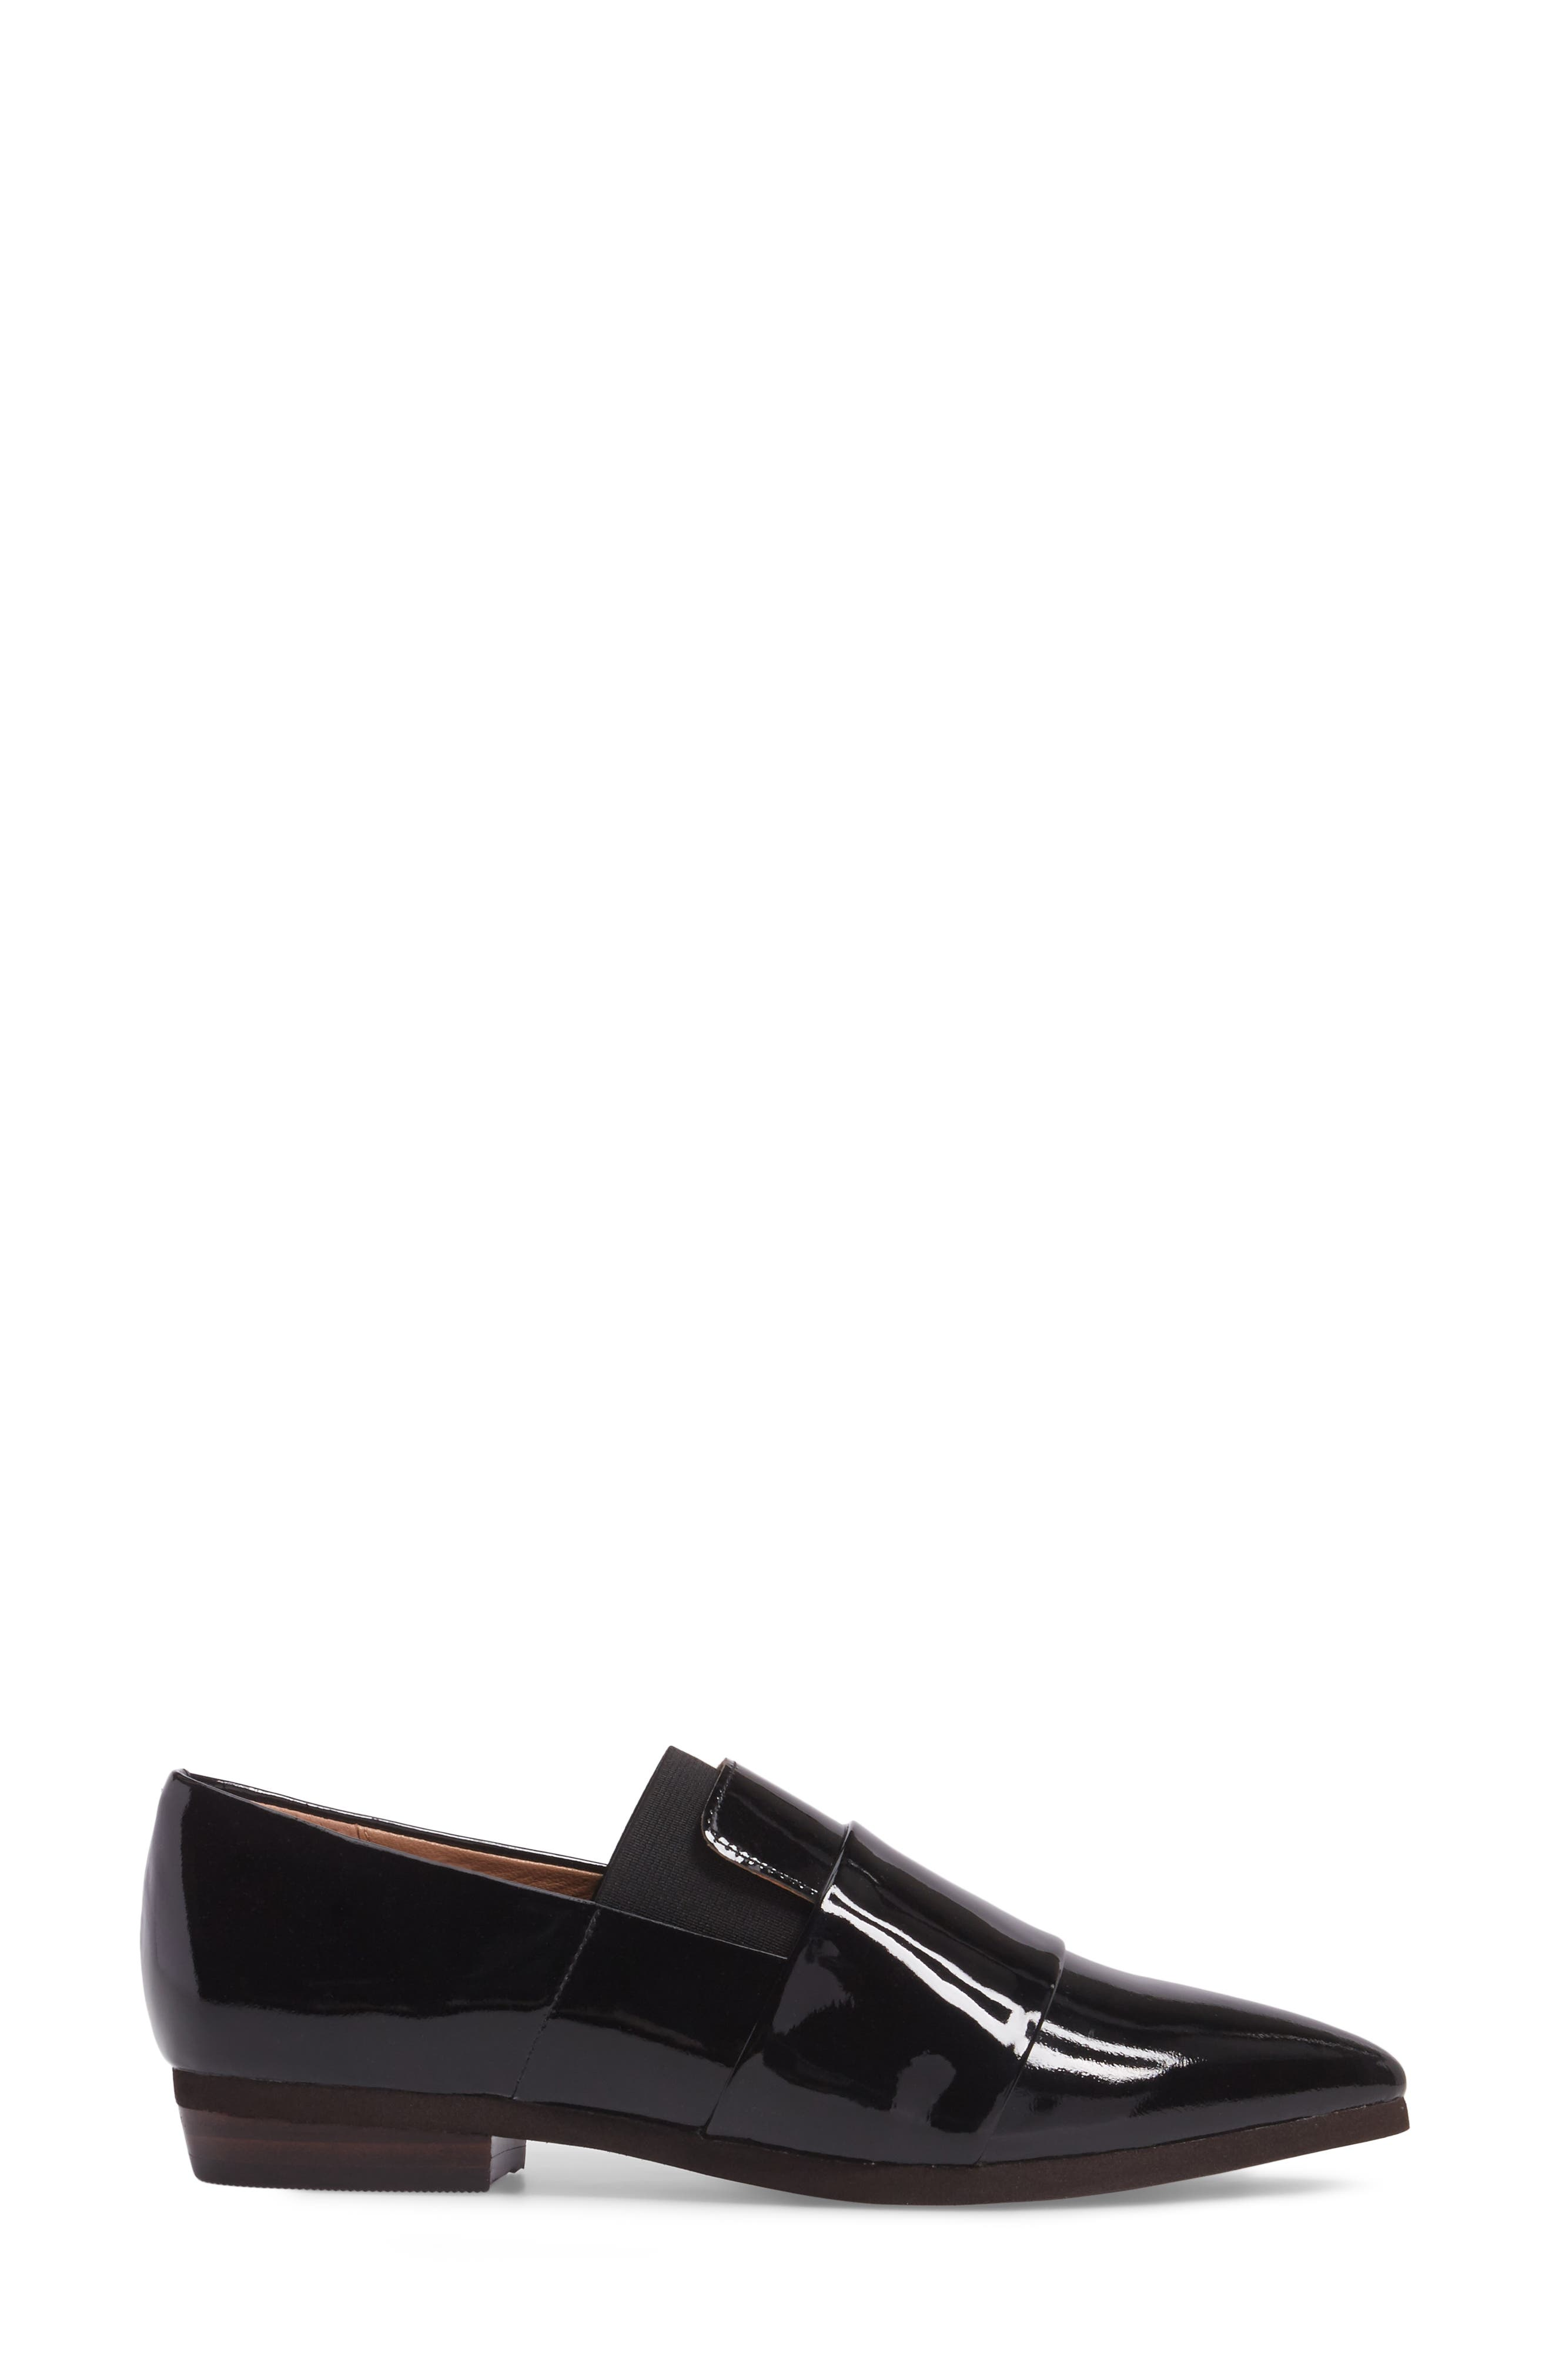 Alternate Image 3  - Linea Paolo Madison Loafer (Women)